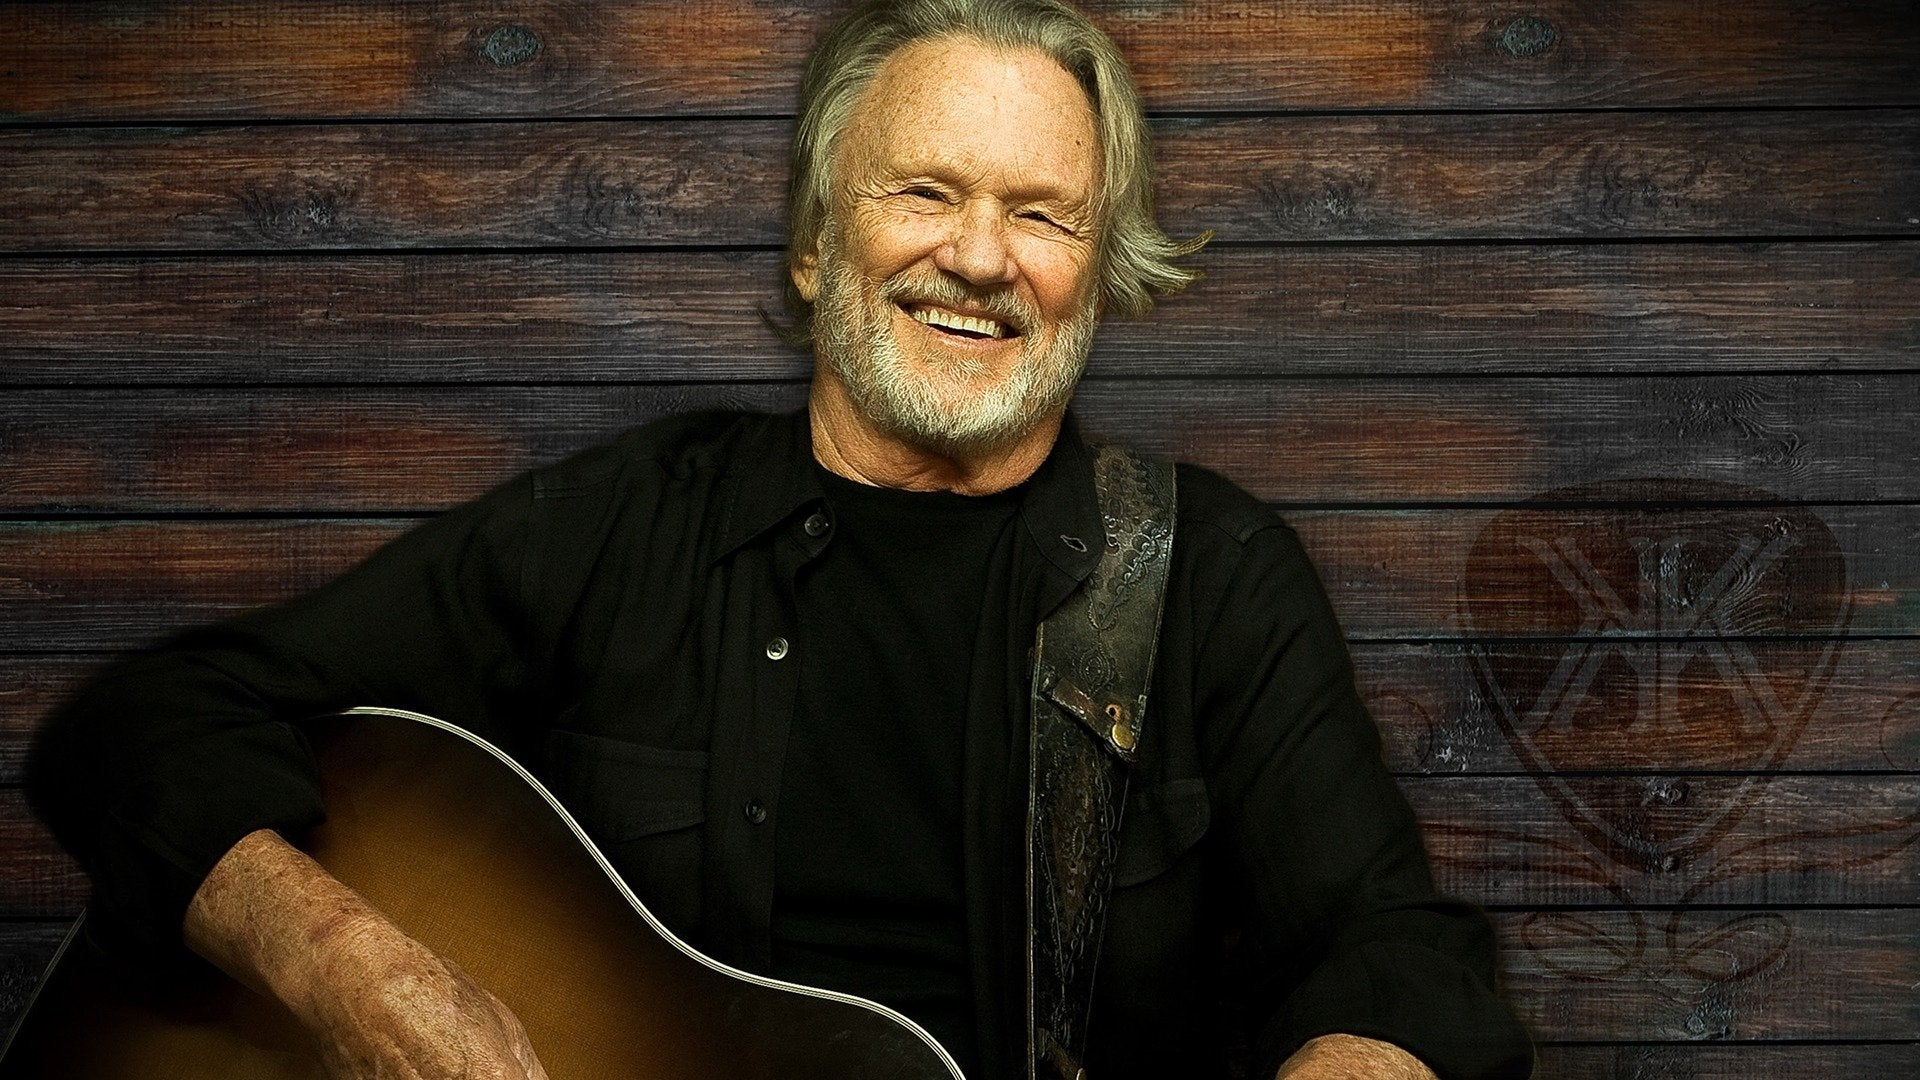 The Life and Songs of Kris Kristofferson